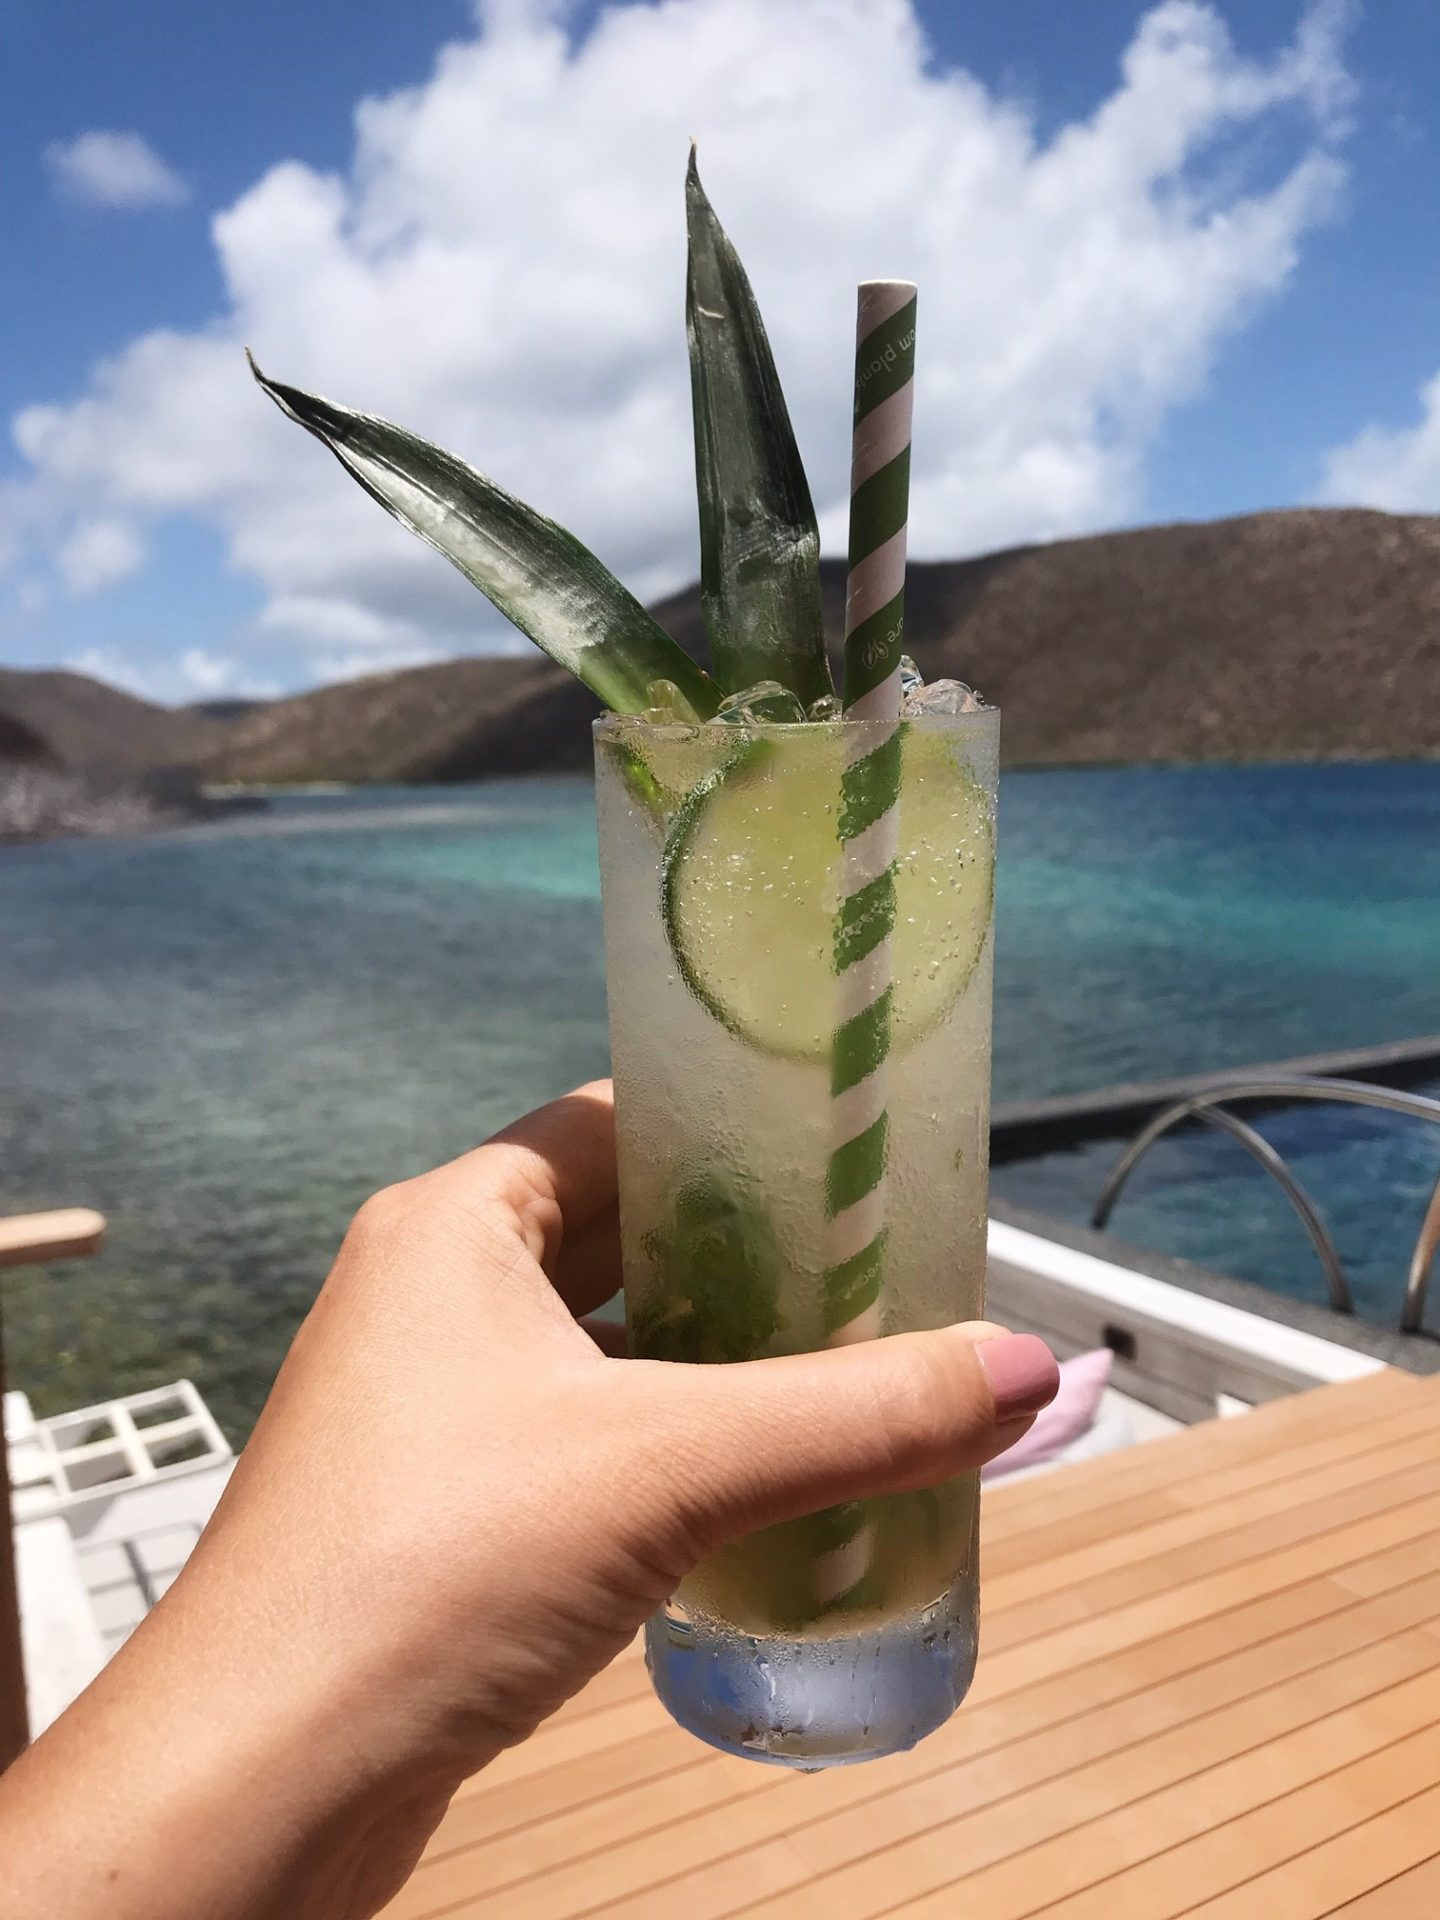 Cheers! Enjoying the views at Nova Restaurant, Oil Nut Bay in the British Virgin Islands